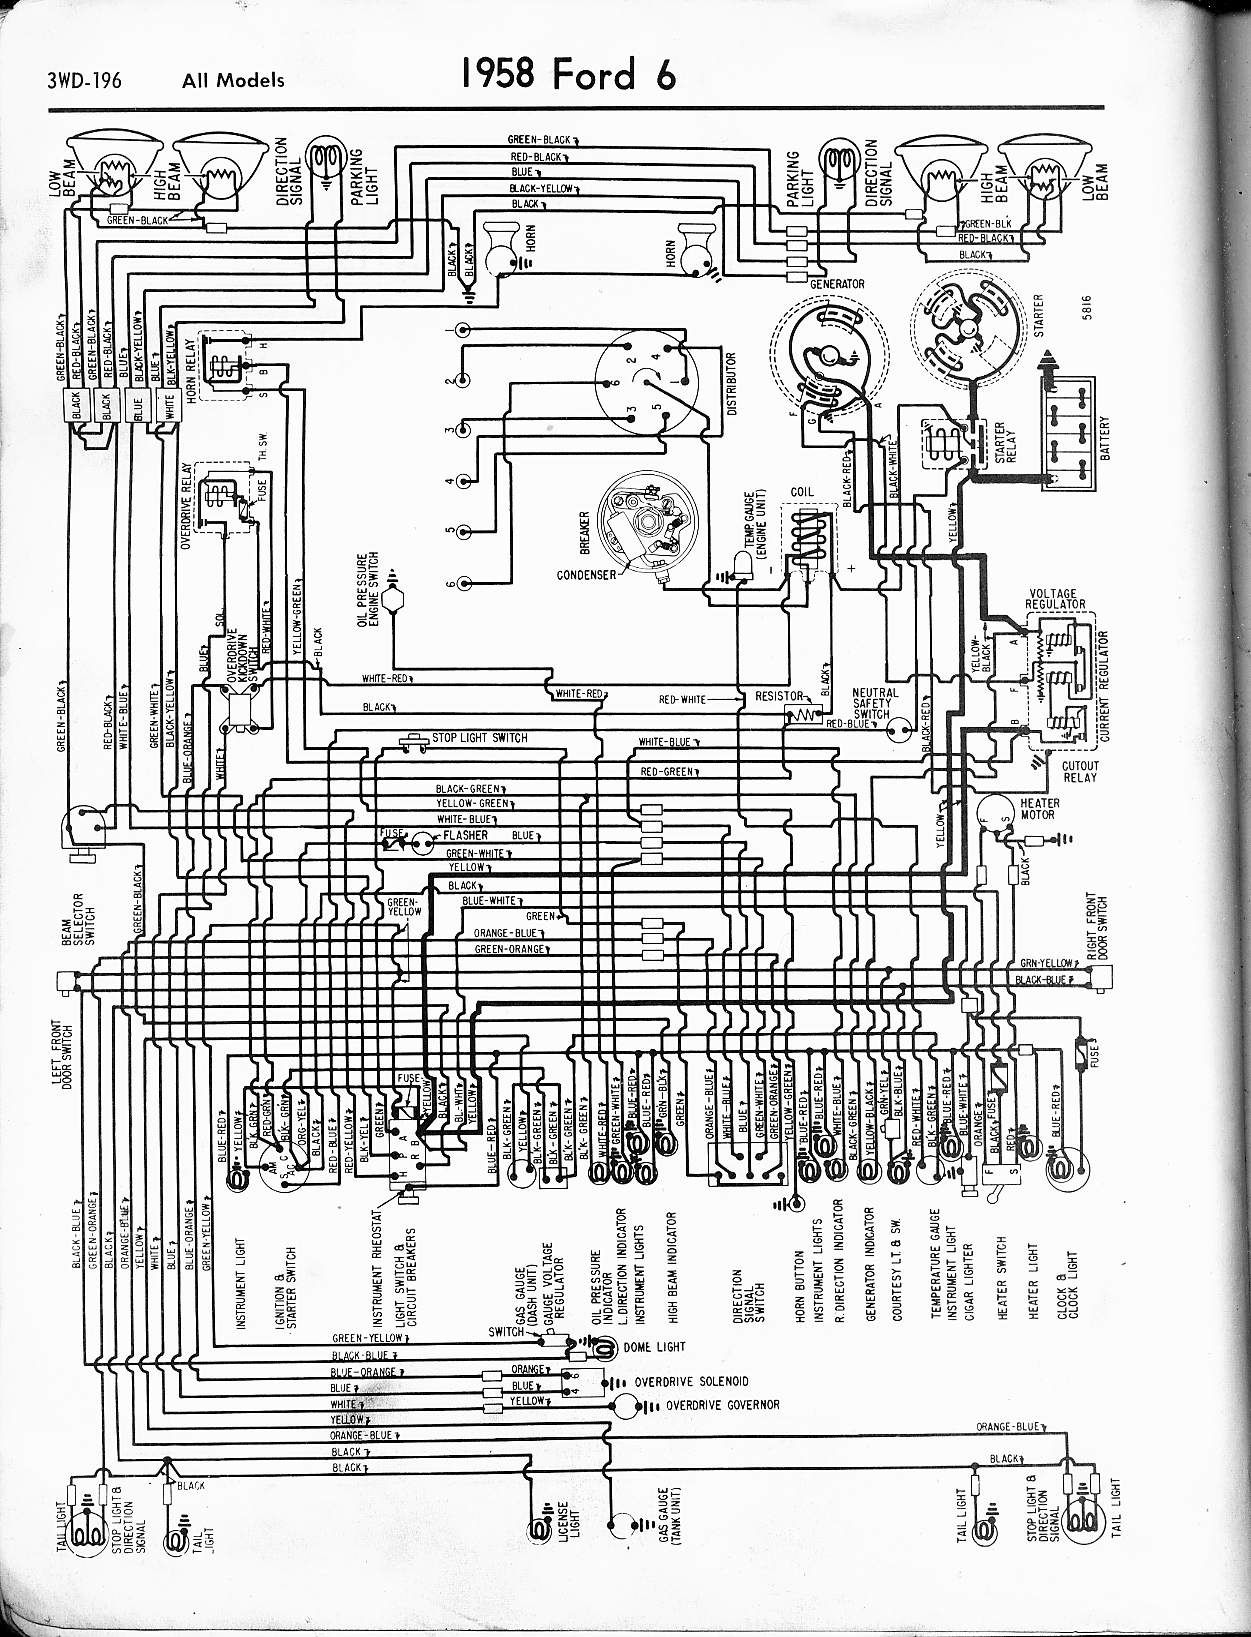 wiring diagrams ford trucks the wiring diagram 1968 ford truck wiring diagram nilza wiring diagram